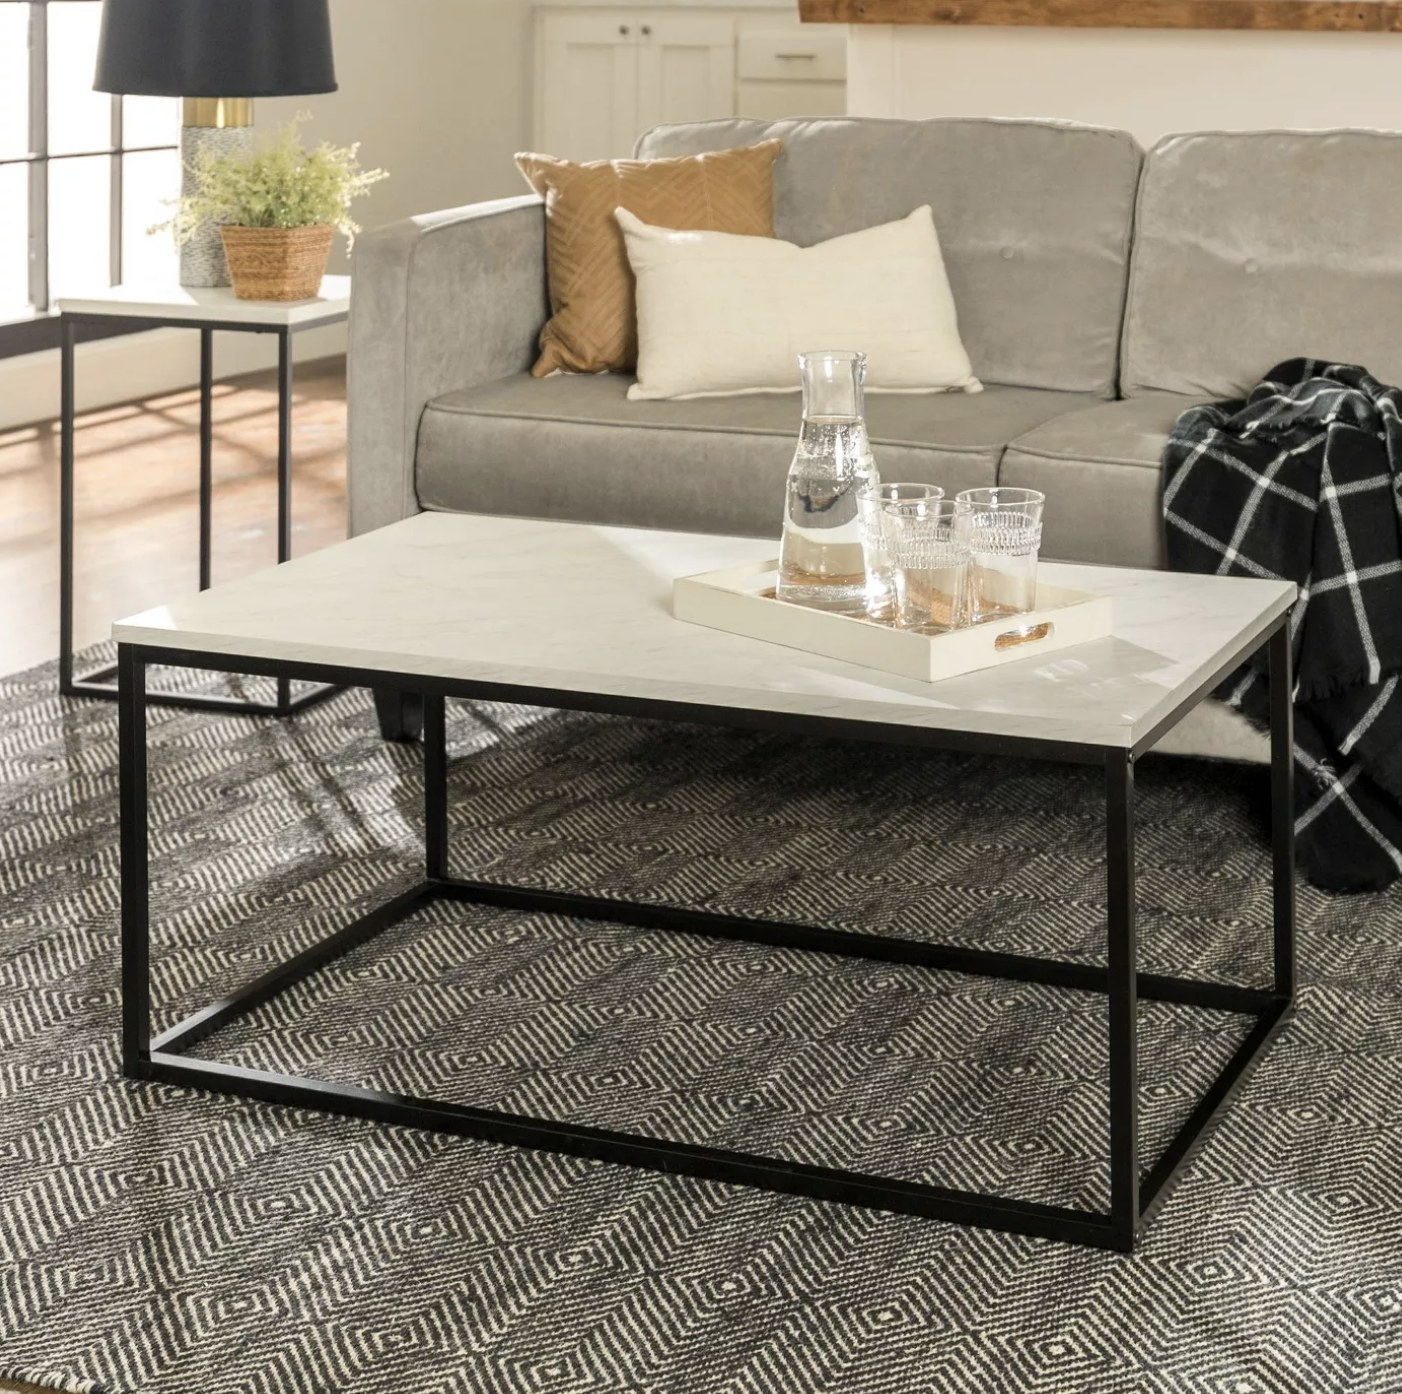 A black box frame coffee table with a faux marble tabletop